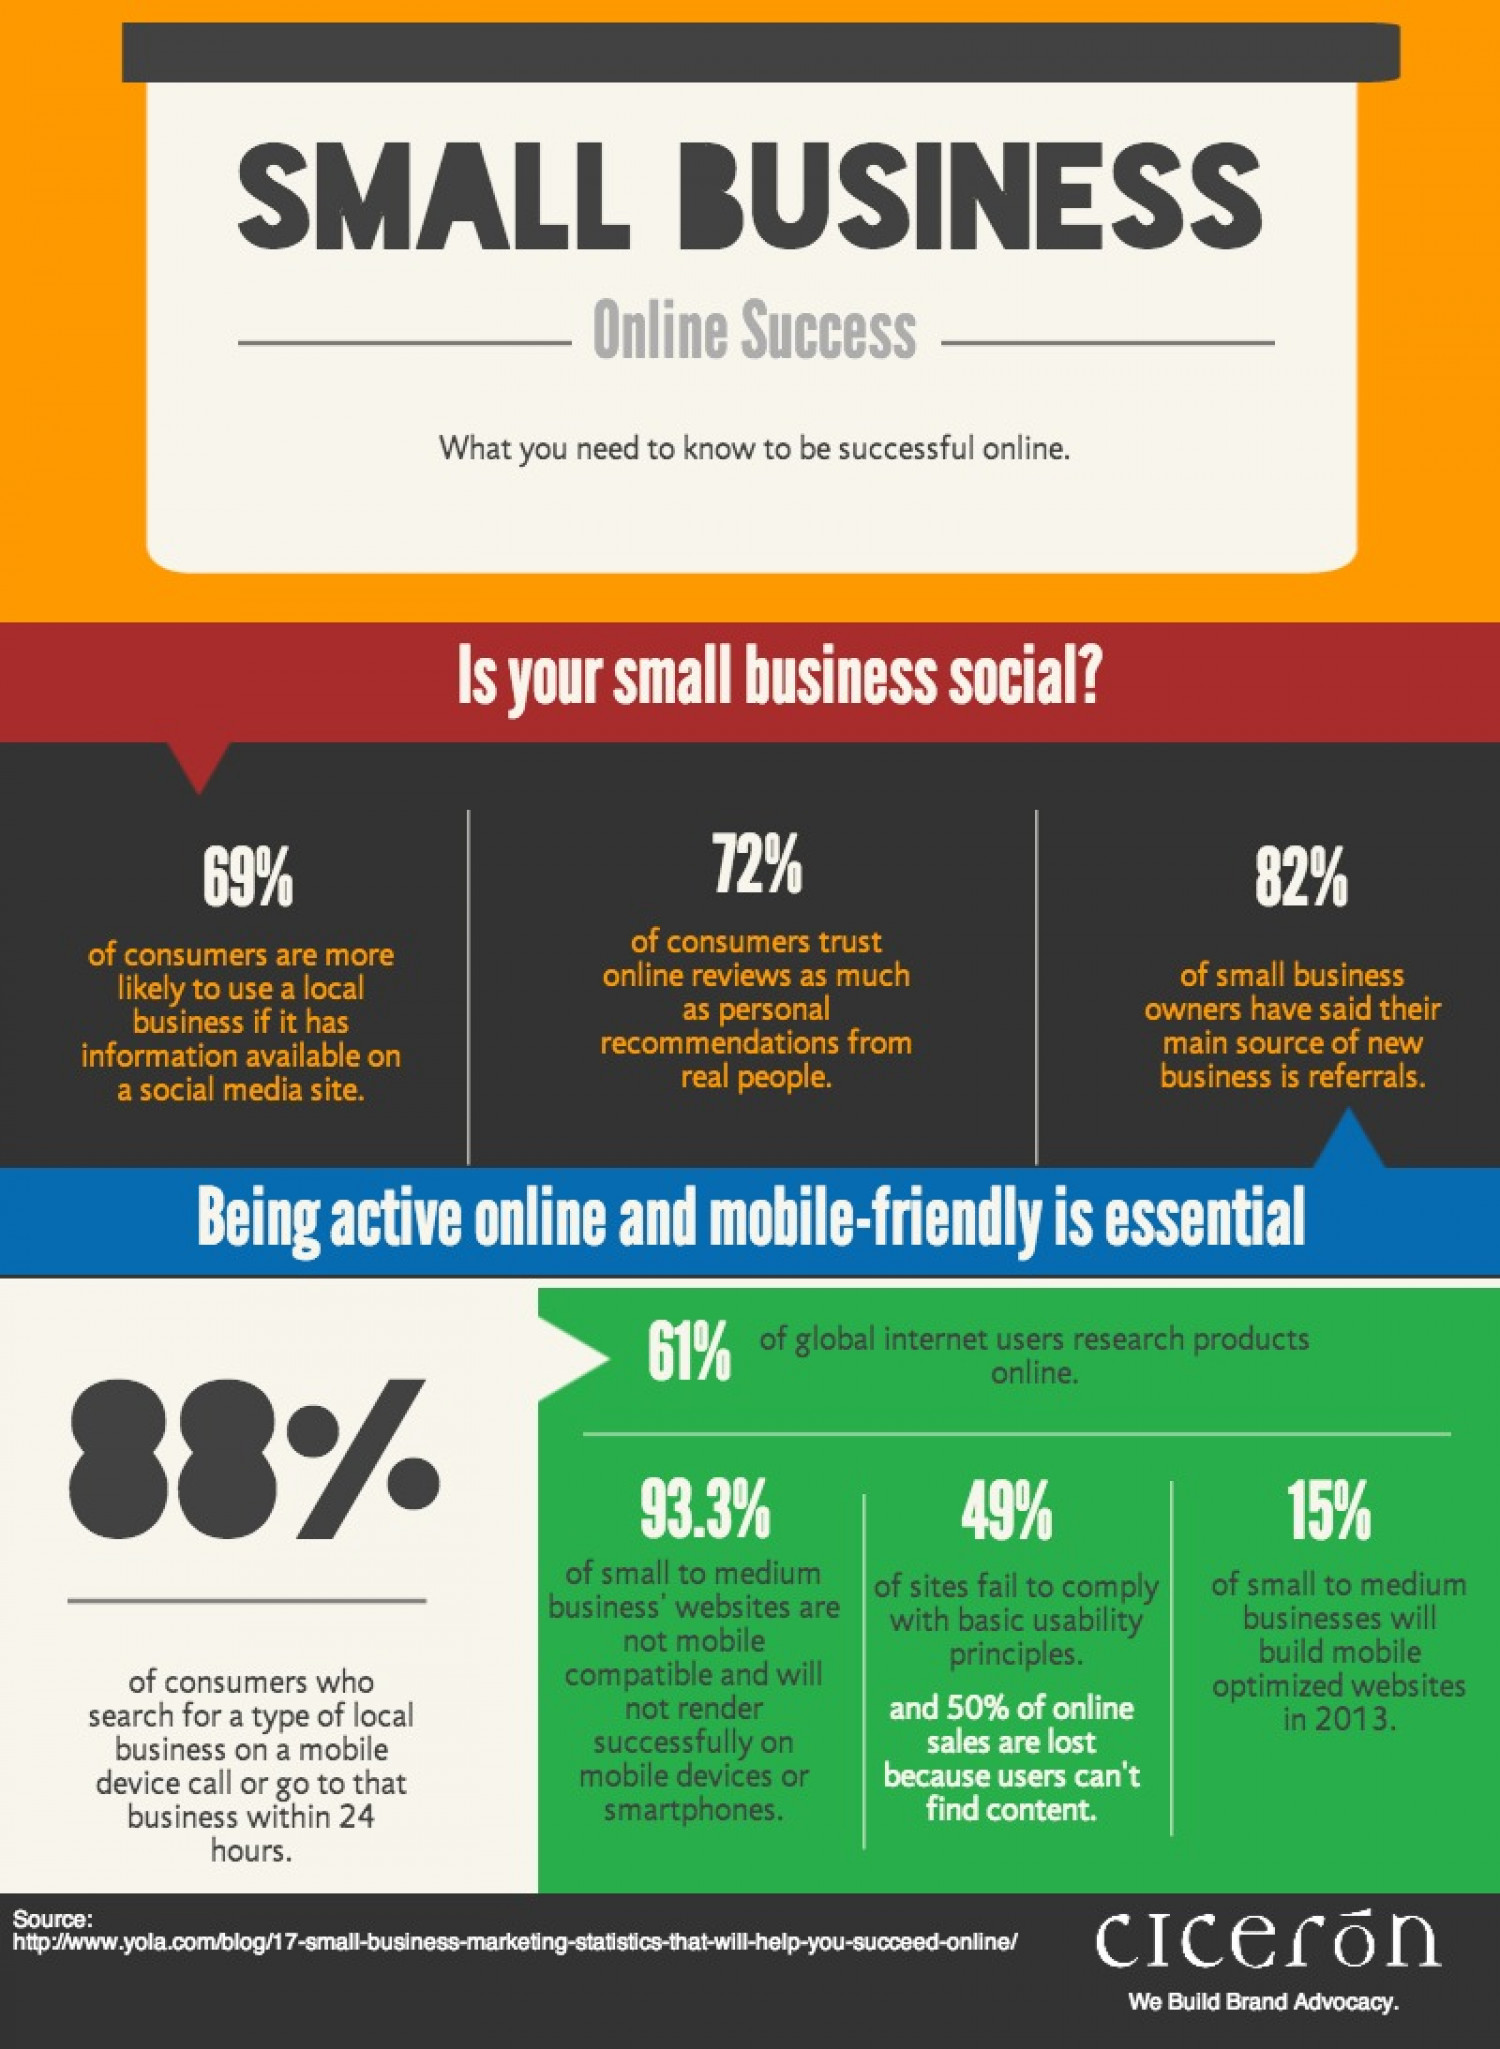 Marketing for Small Business: How to Be Successful Online Infographic